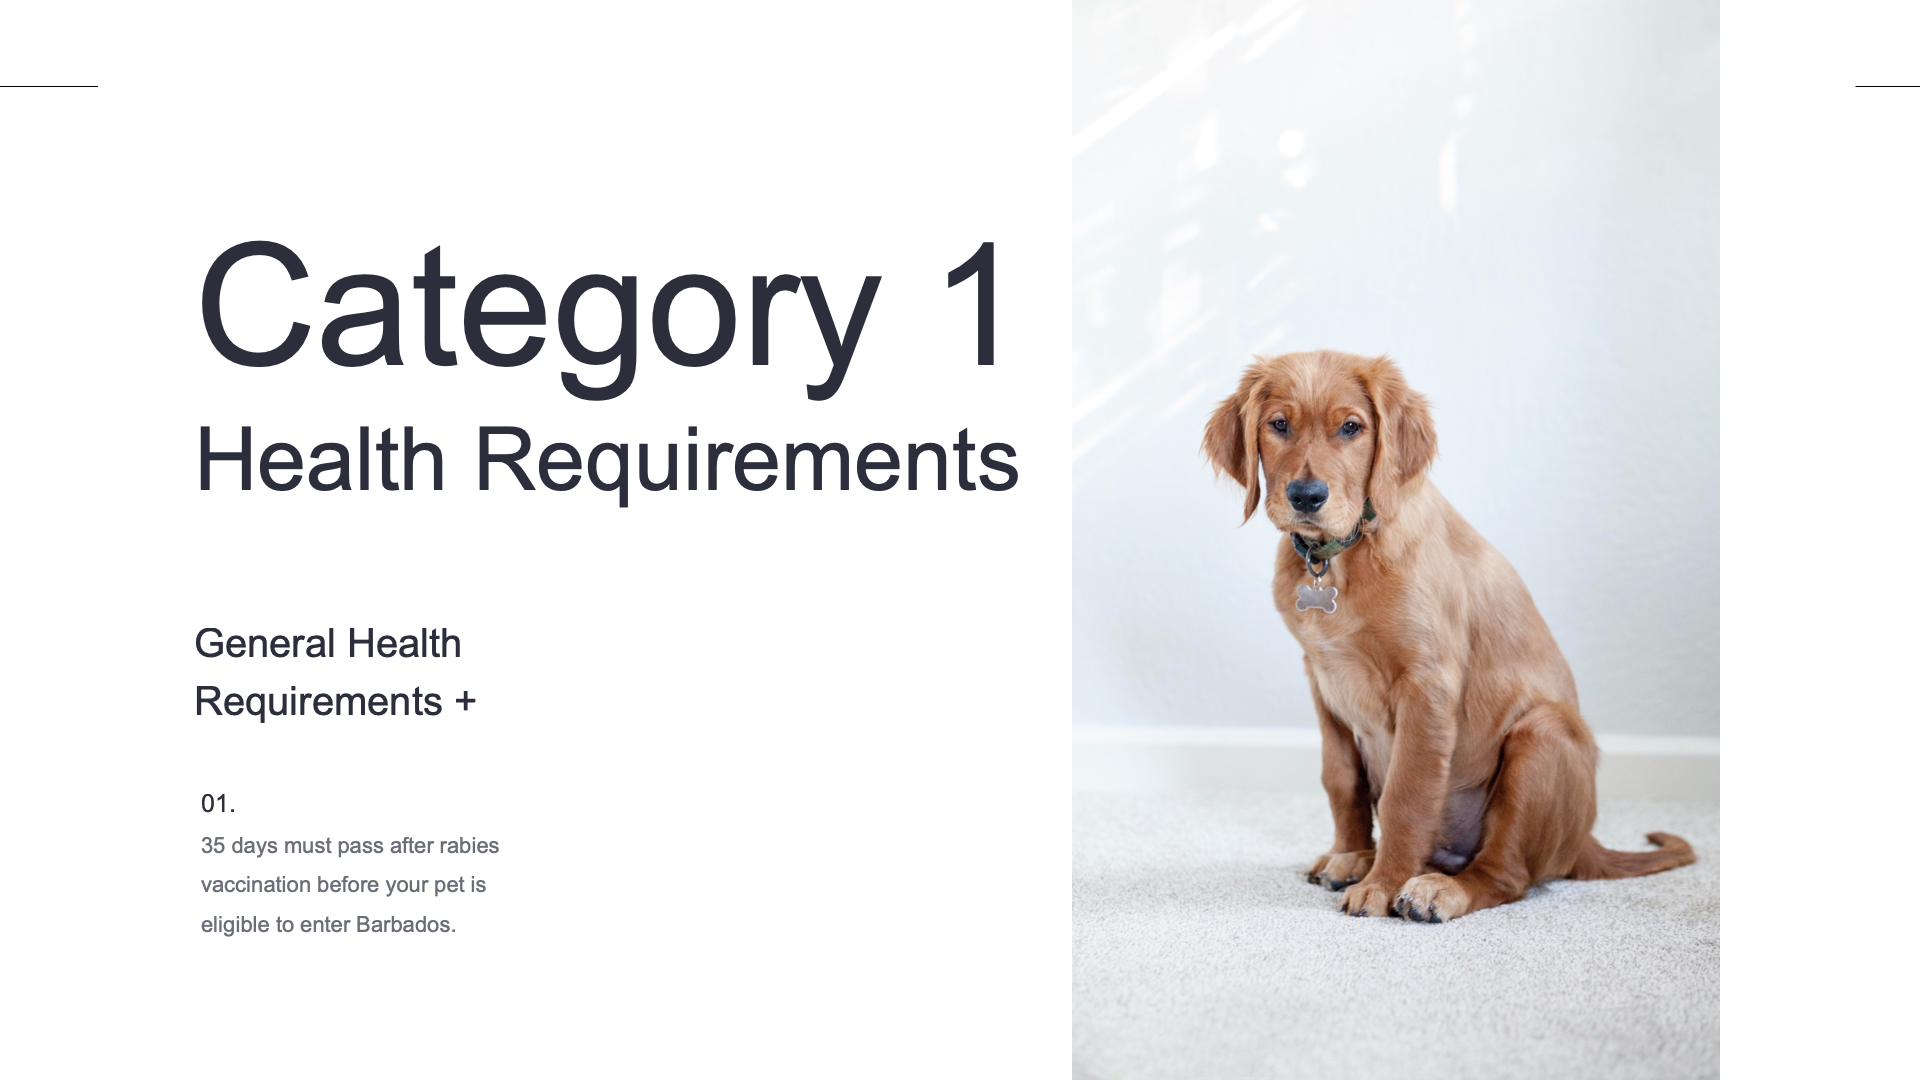 Category 1 Health Requirements